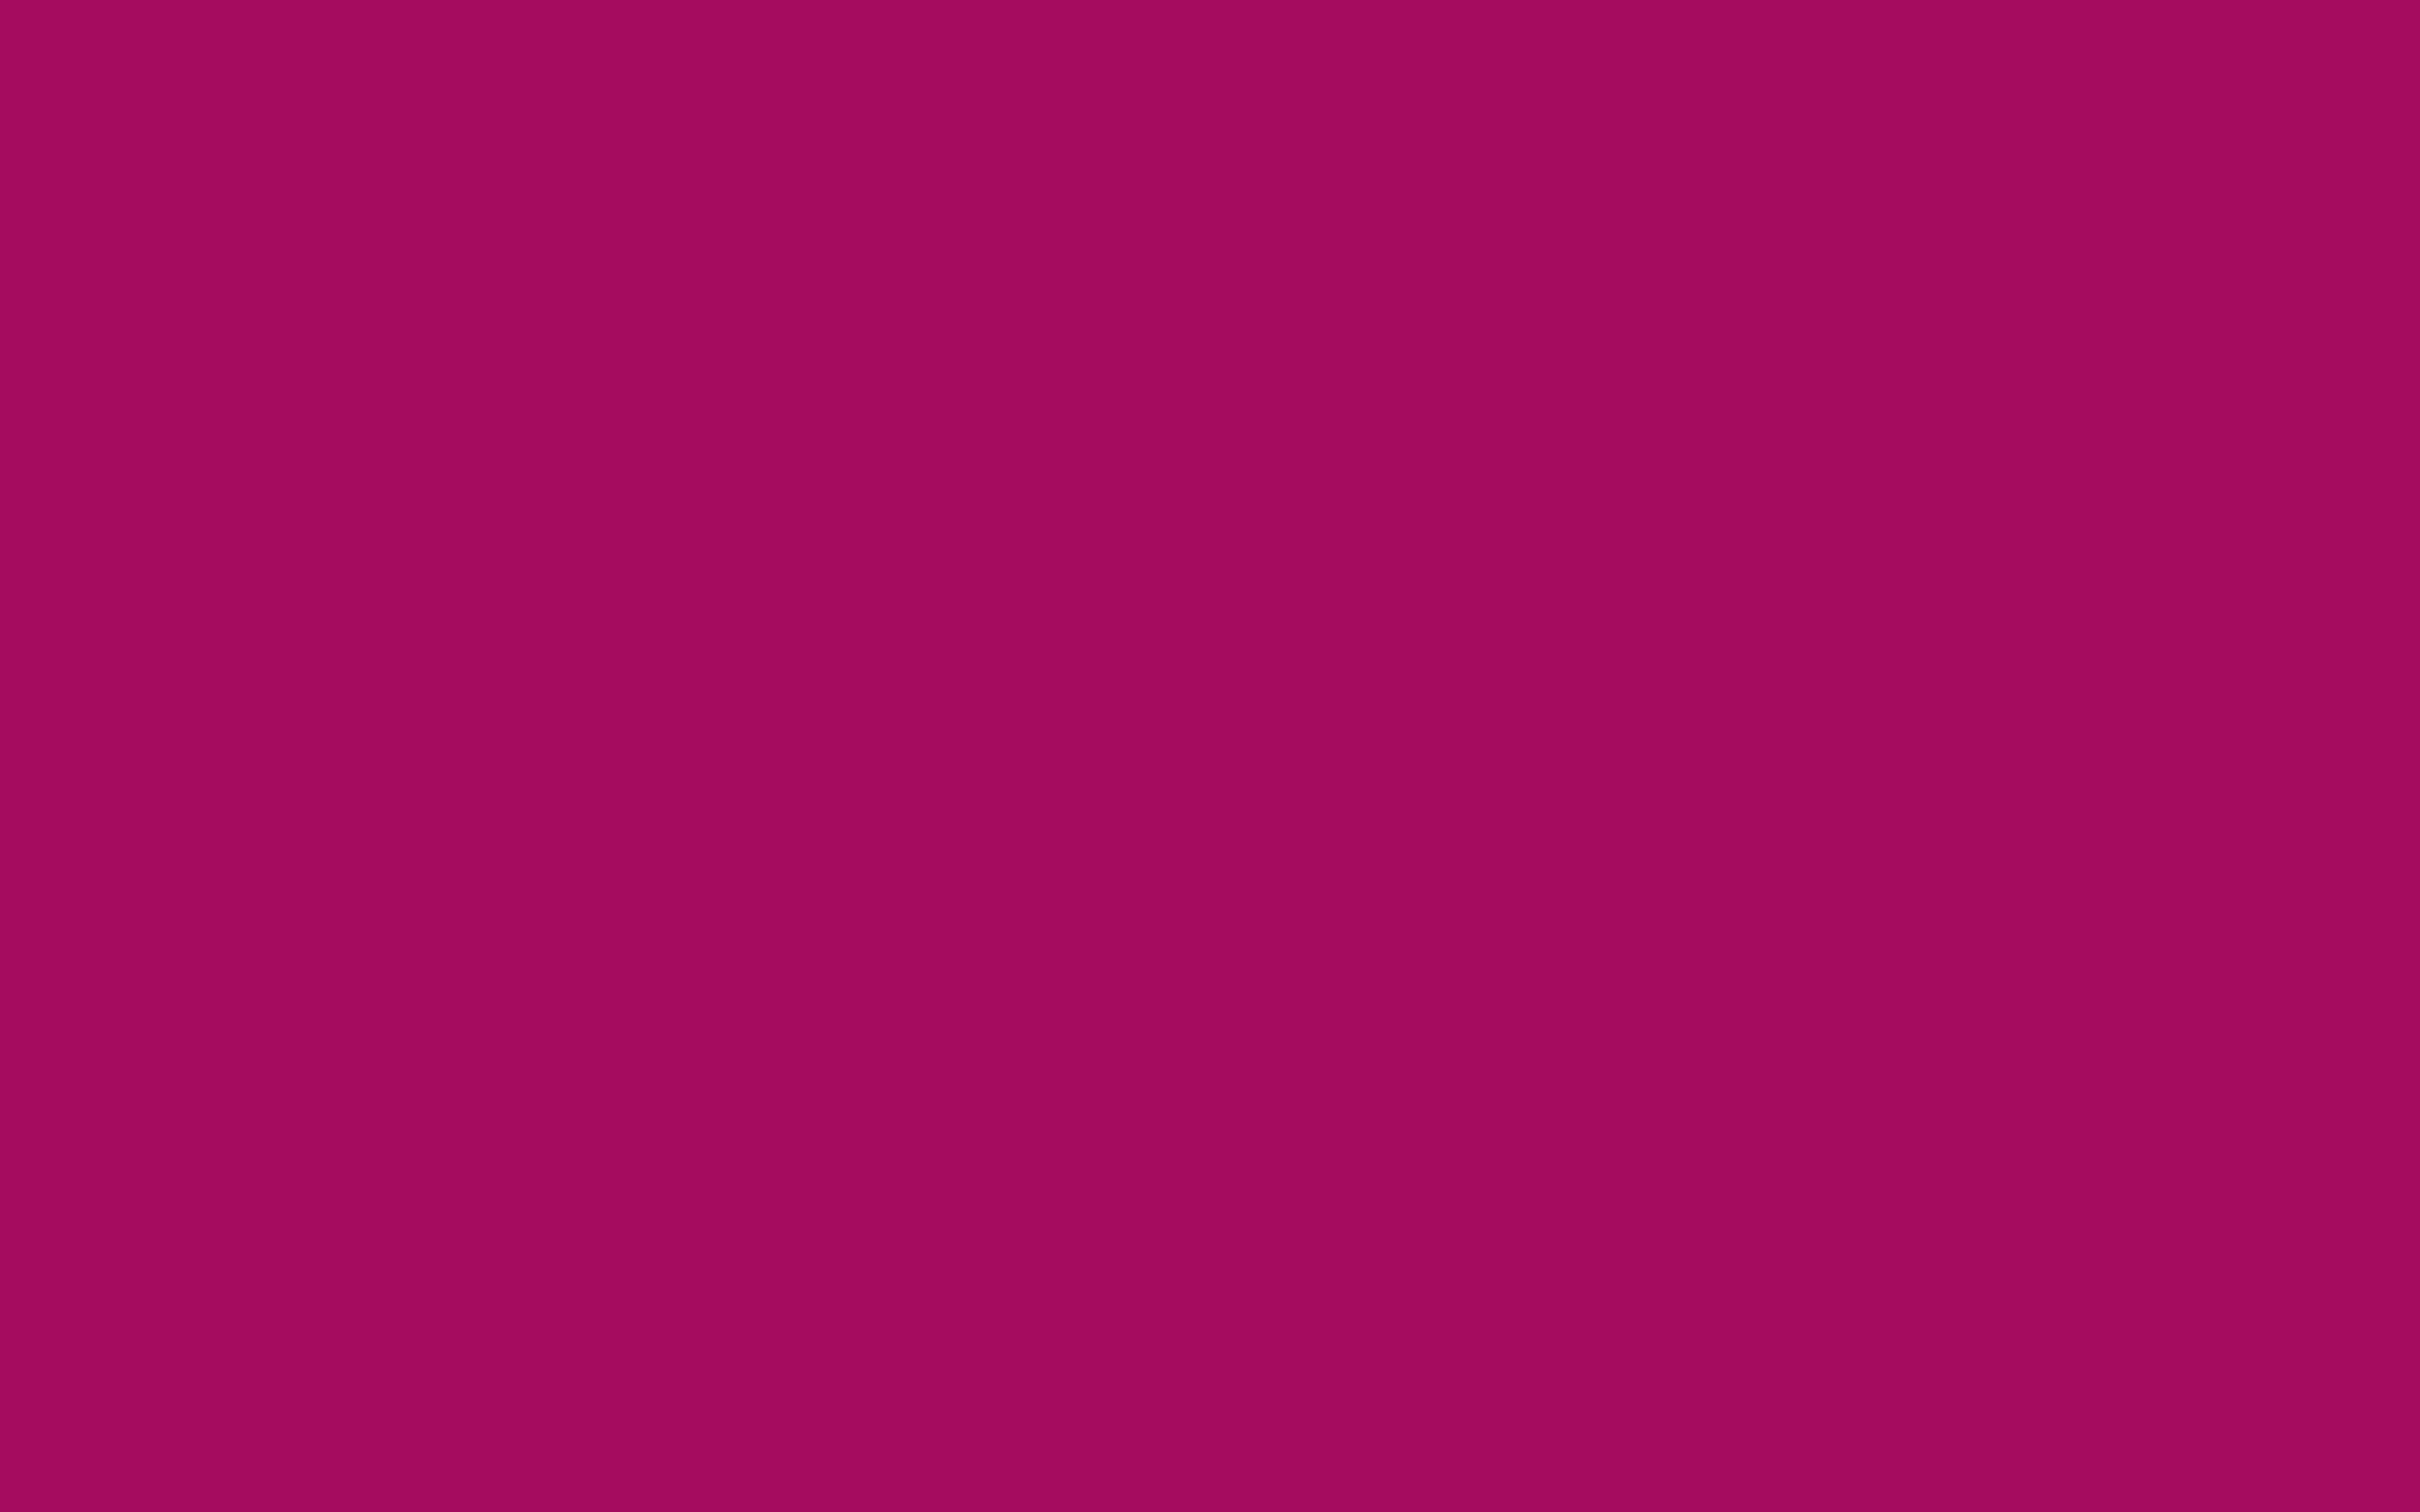 2560x1600 Jazzberry Jam Solid Color Background